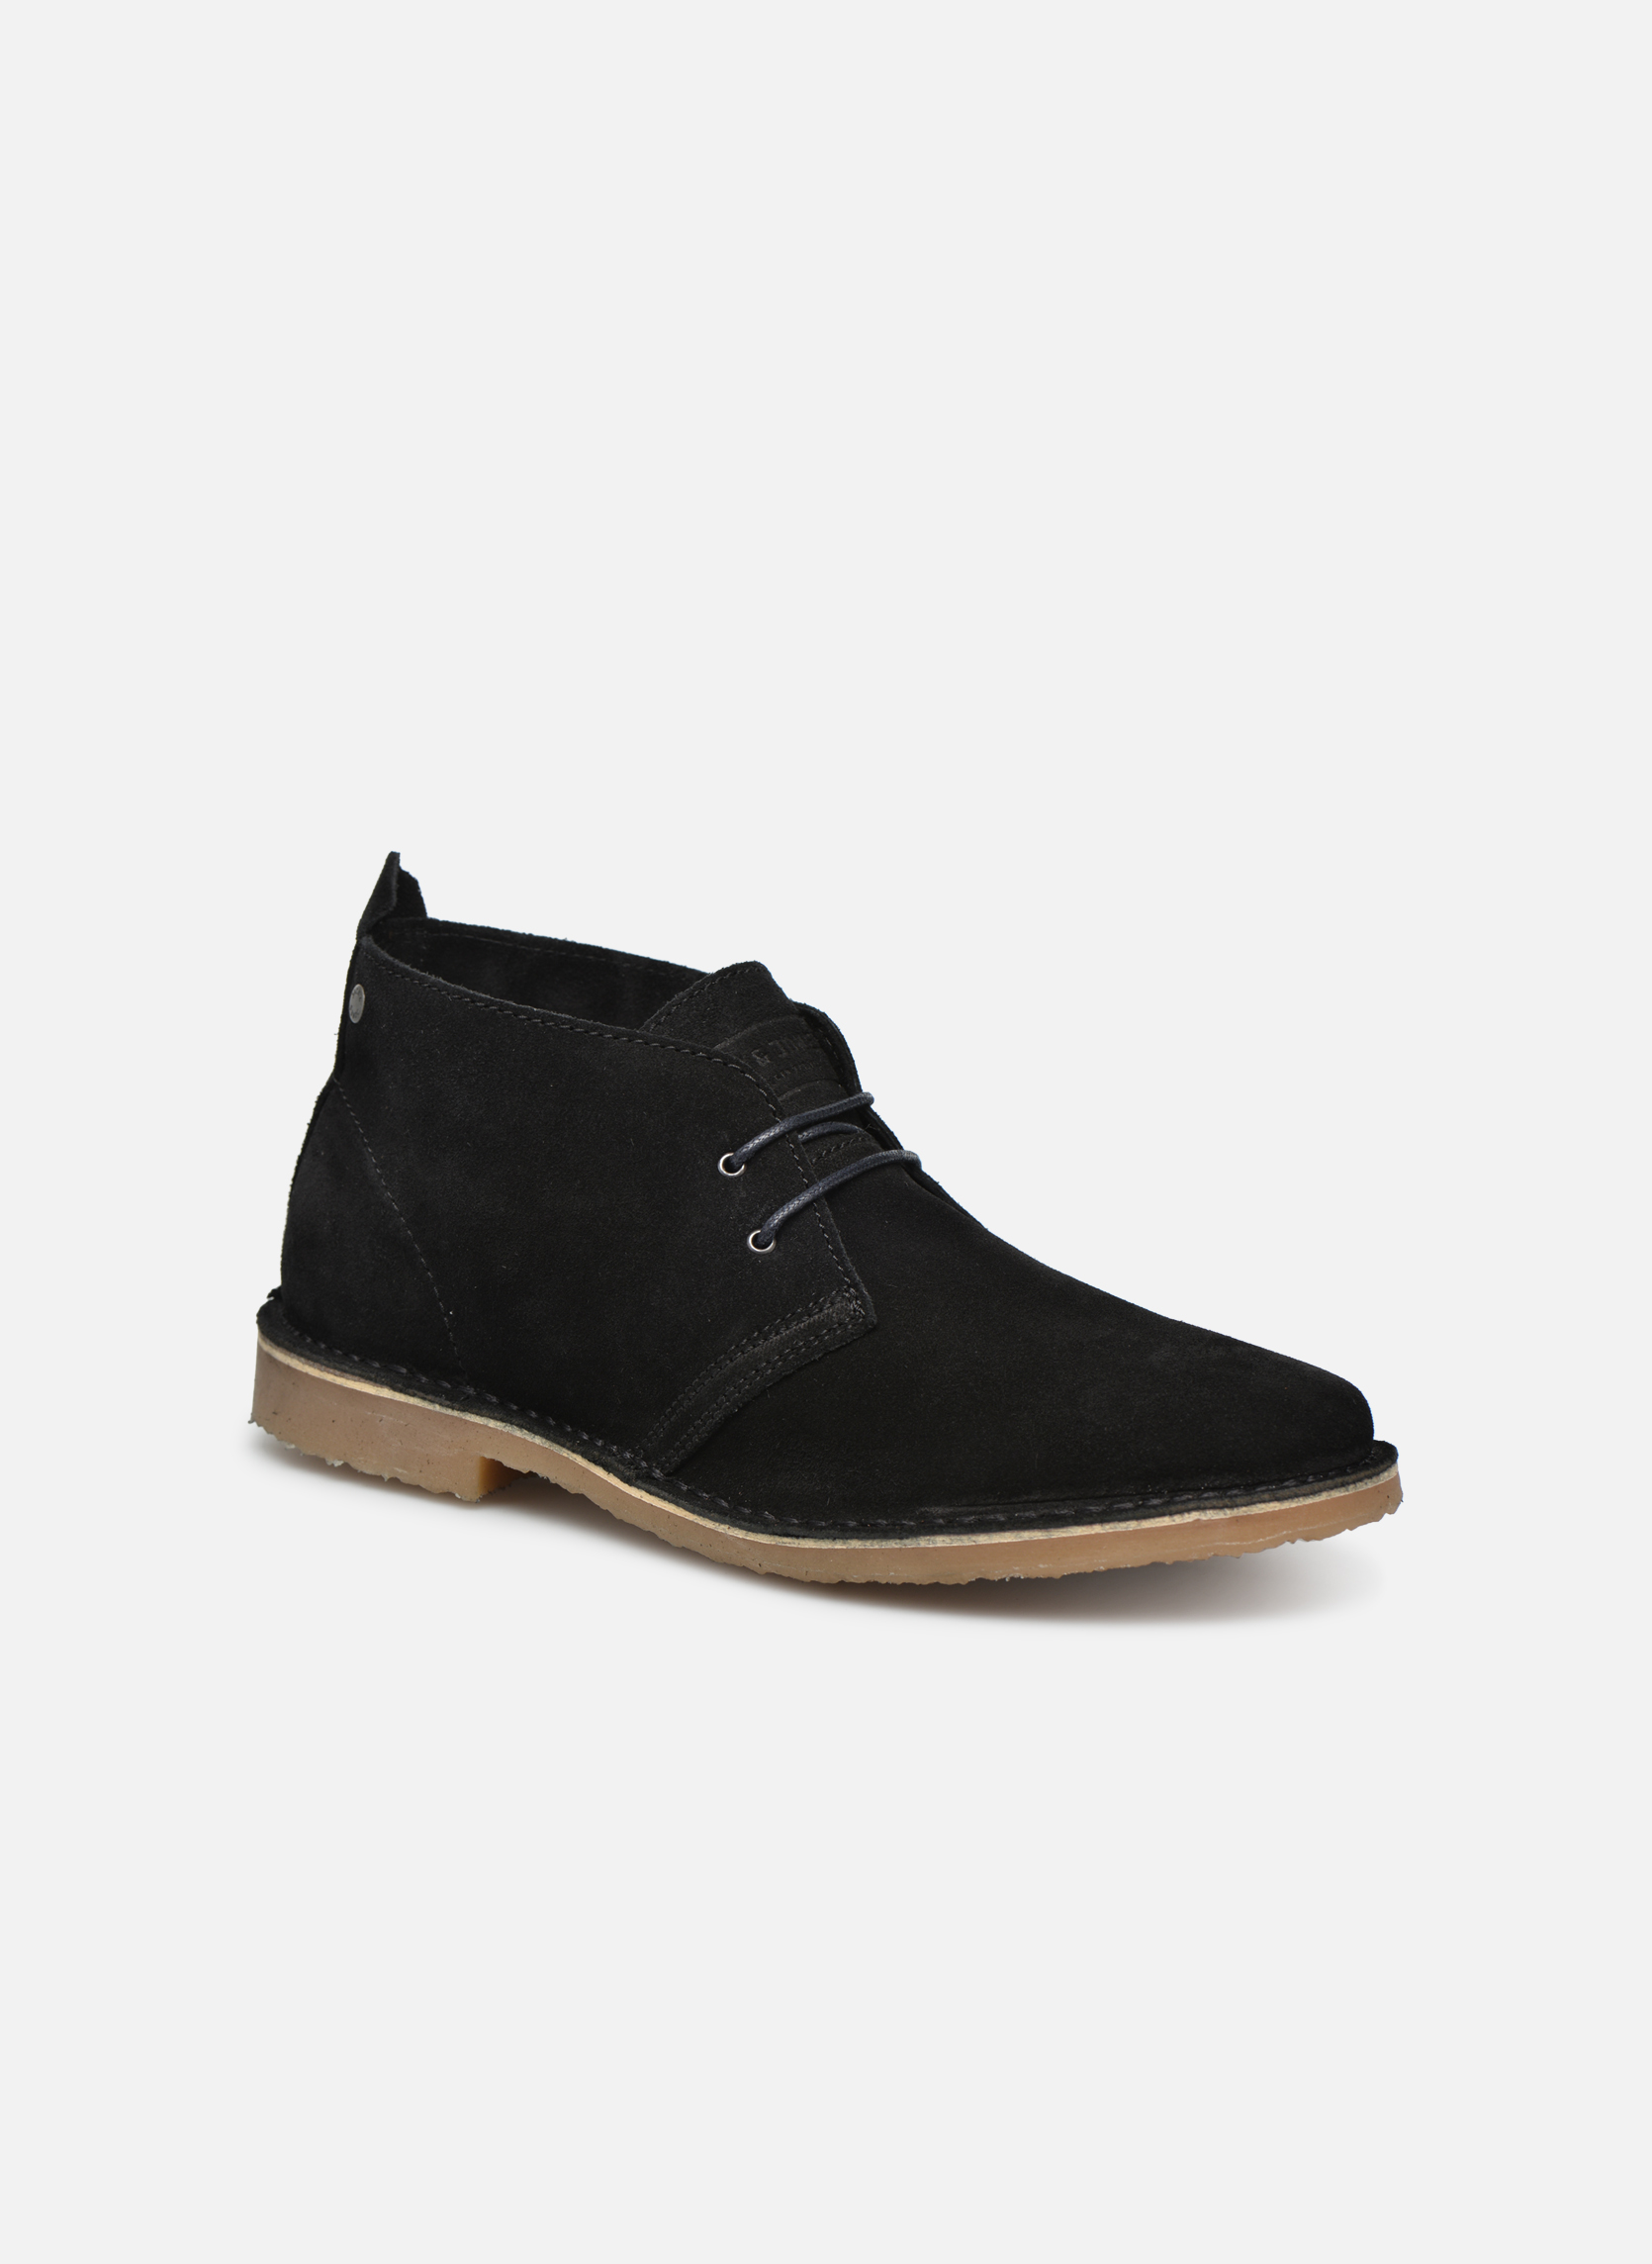 Jack & Jones JJ Gobi Suede Desert Boot